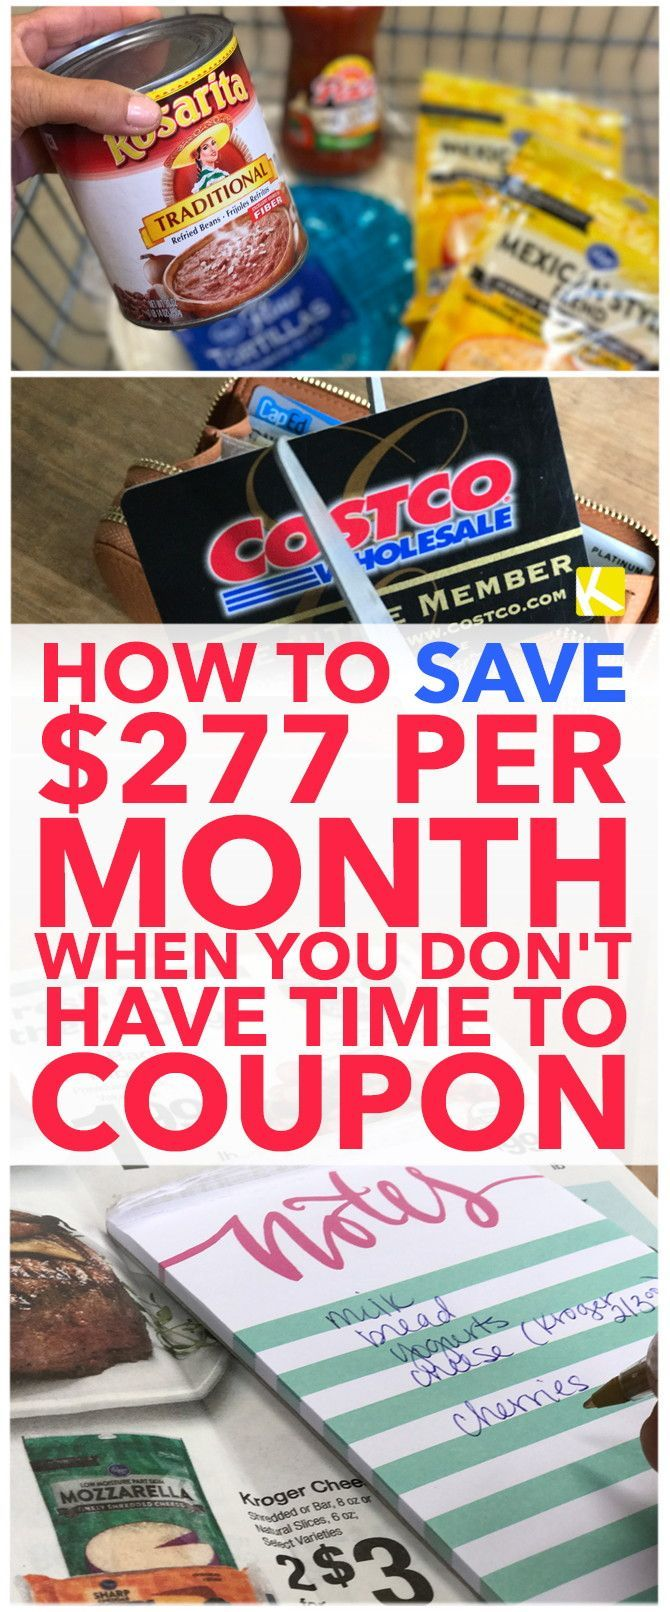 How to Save $277 per Month When You Don't Have Time to Coupon